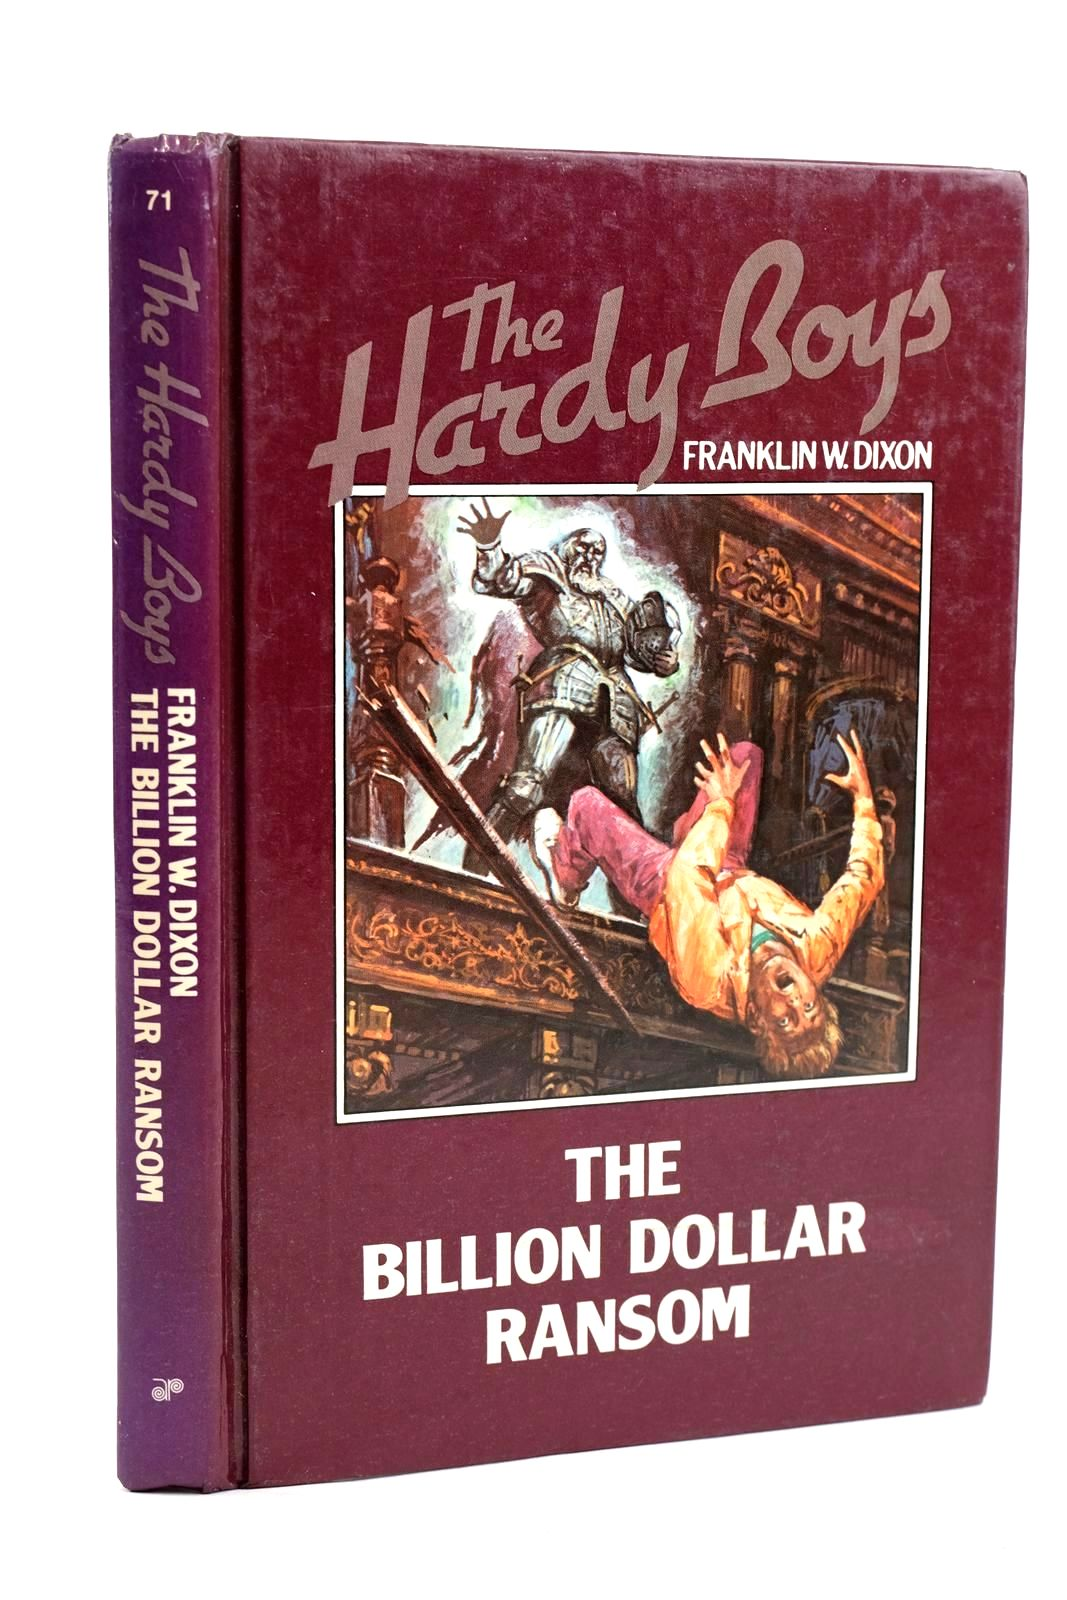 Photo of THE BILLION DOLLAR RANSOM written by Dixon, Franklin W. illustrated by Morrill, Leslie published by Angus & Robertson Publishers (STOCK CODE: 1319545)  for sale by Stella & Rose's Books